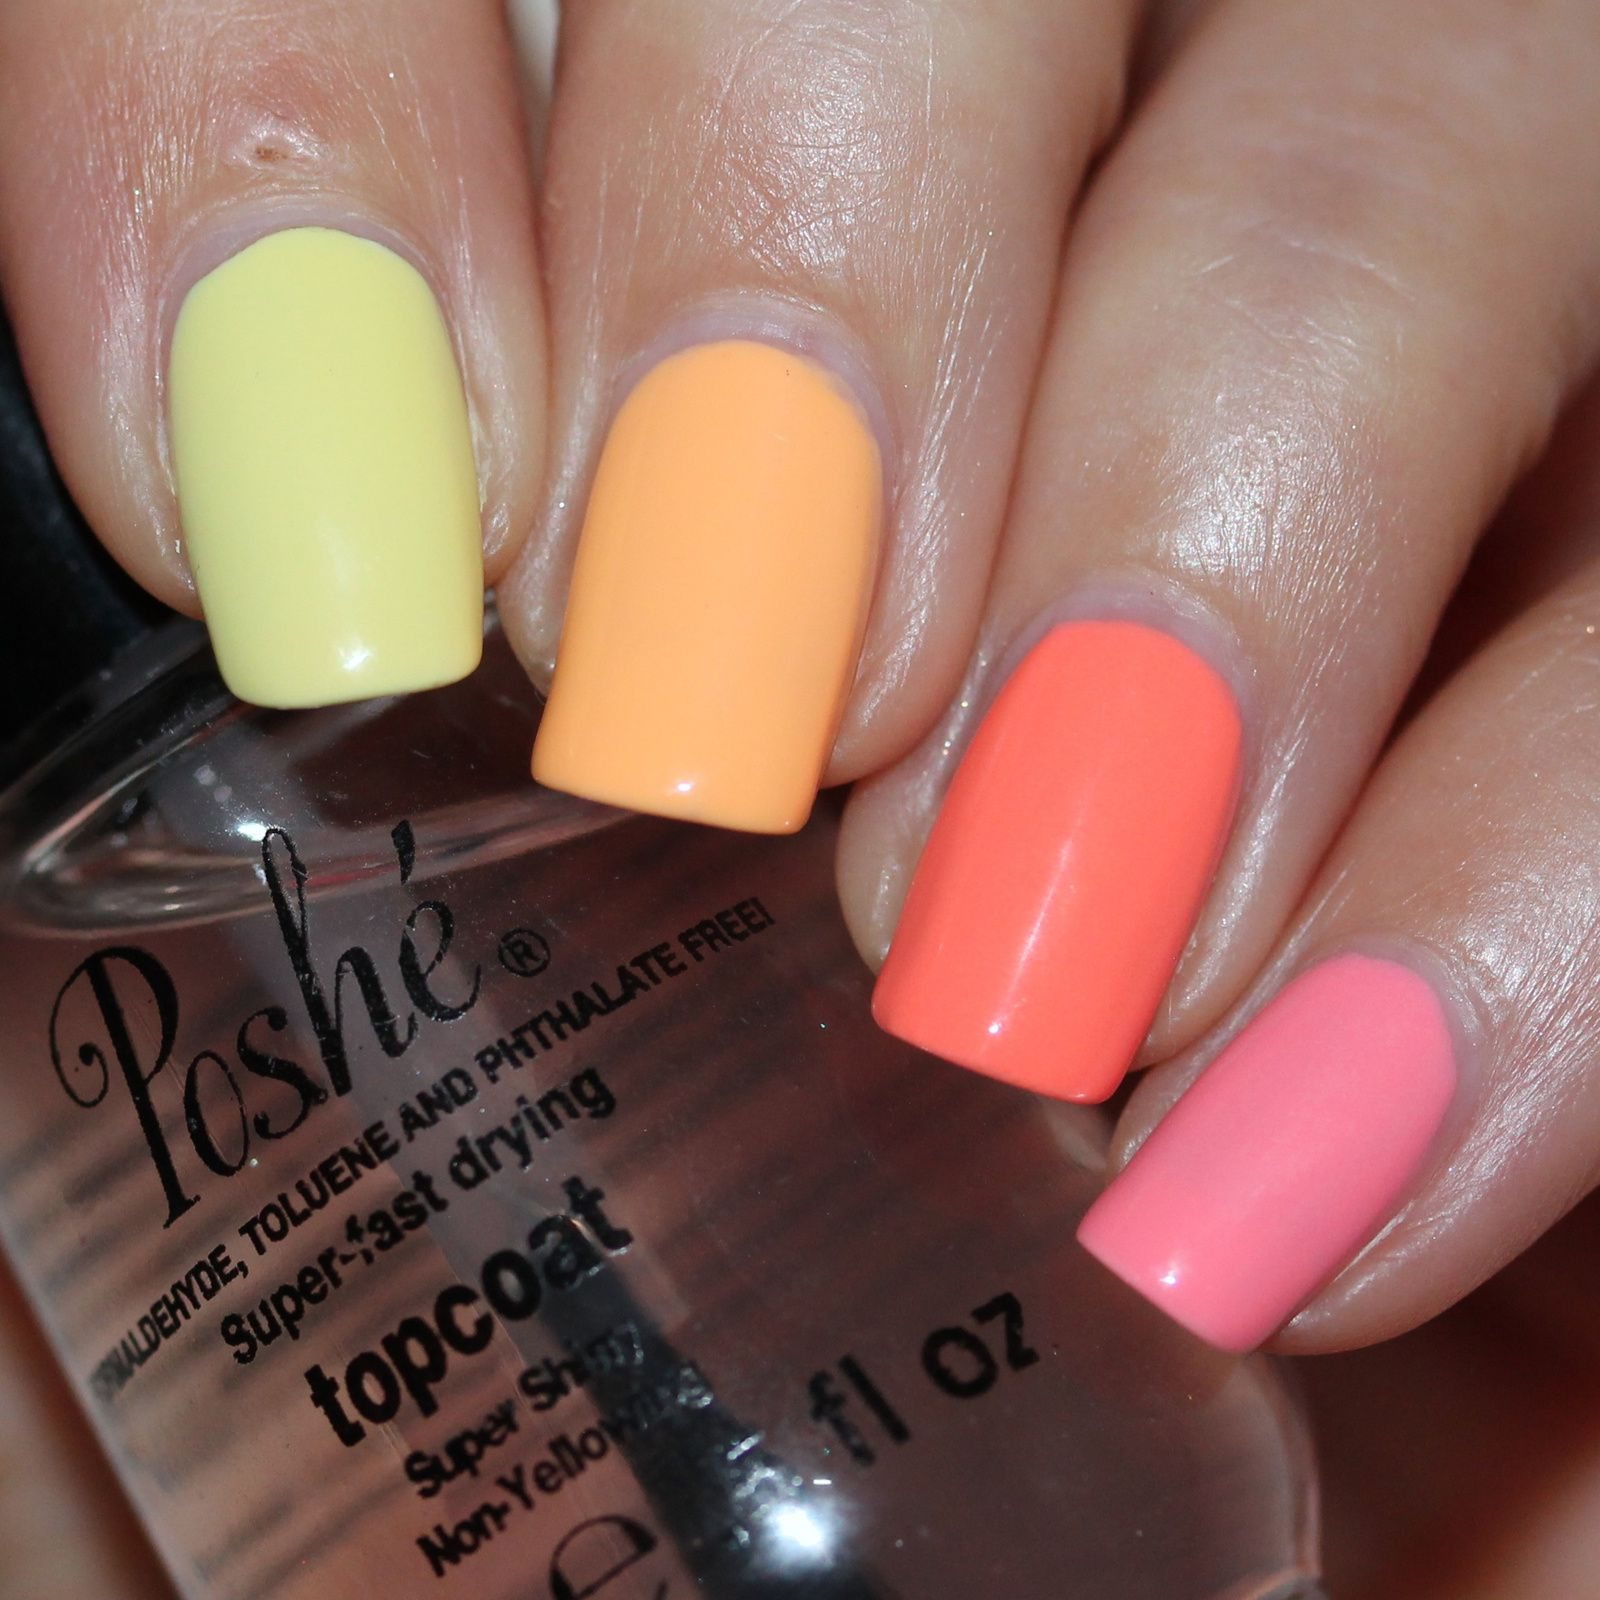 Duri Rejuvacote / Maybelline Bleached Neons Coral Heat, Pink Punch, Bleacged in Peach, Citrus Collide, Lime Accent / Poshe Top Coat